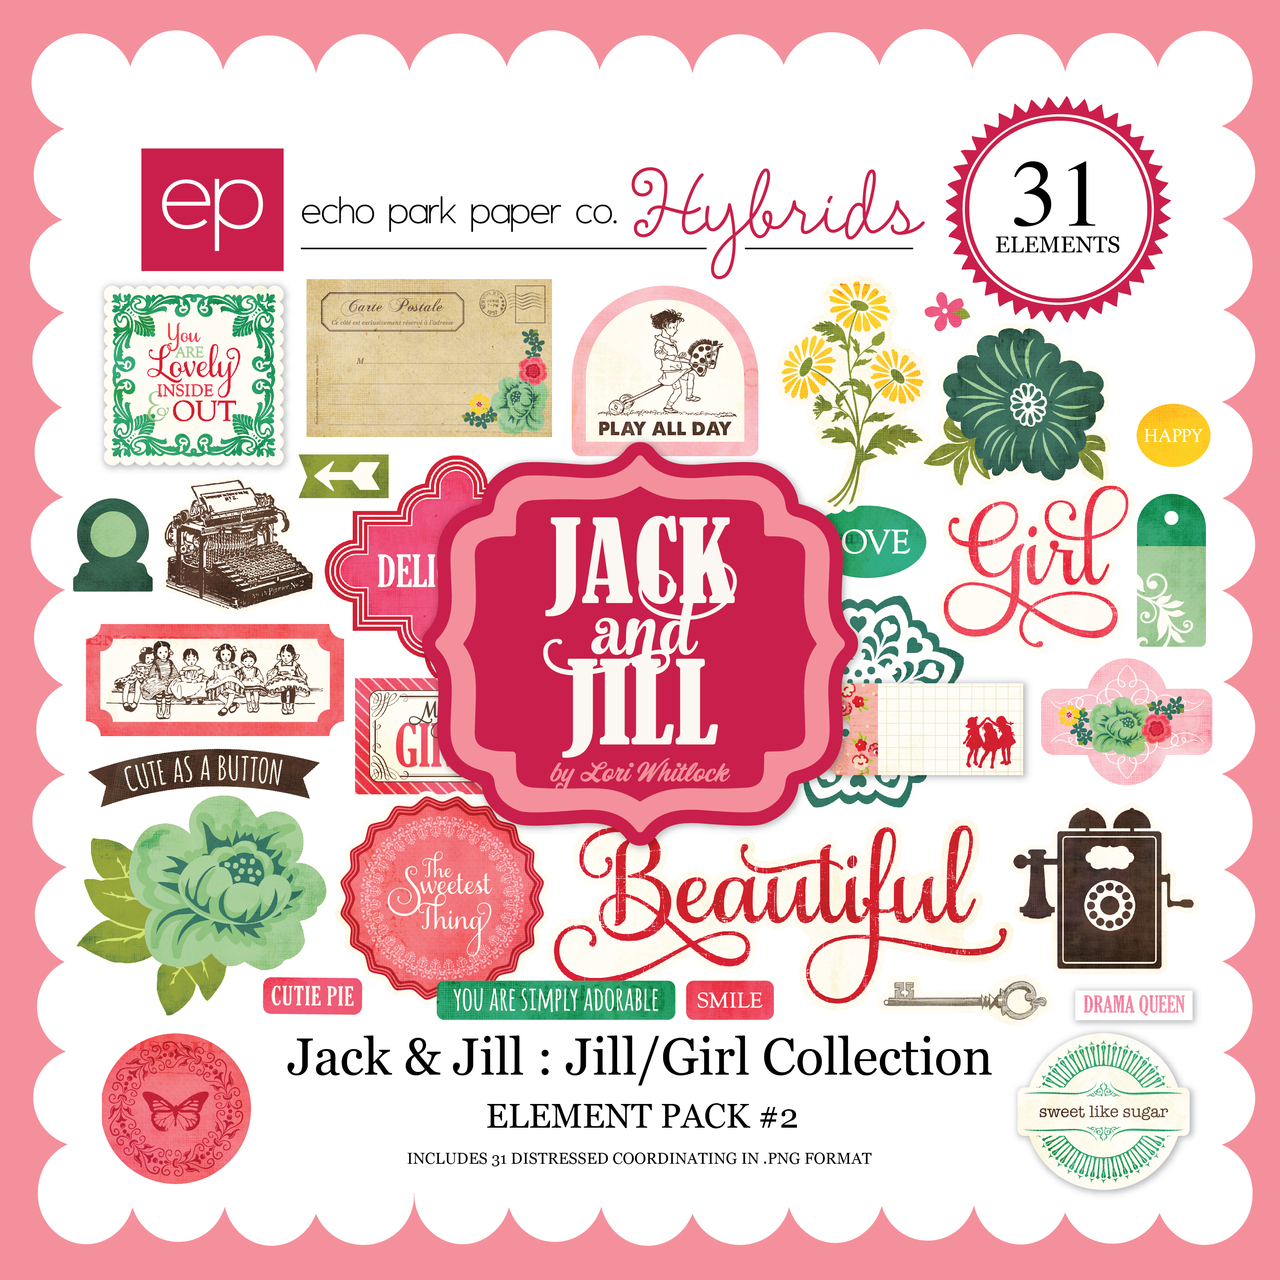 Jack & Jill: Jill/Girl Element Pack #2